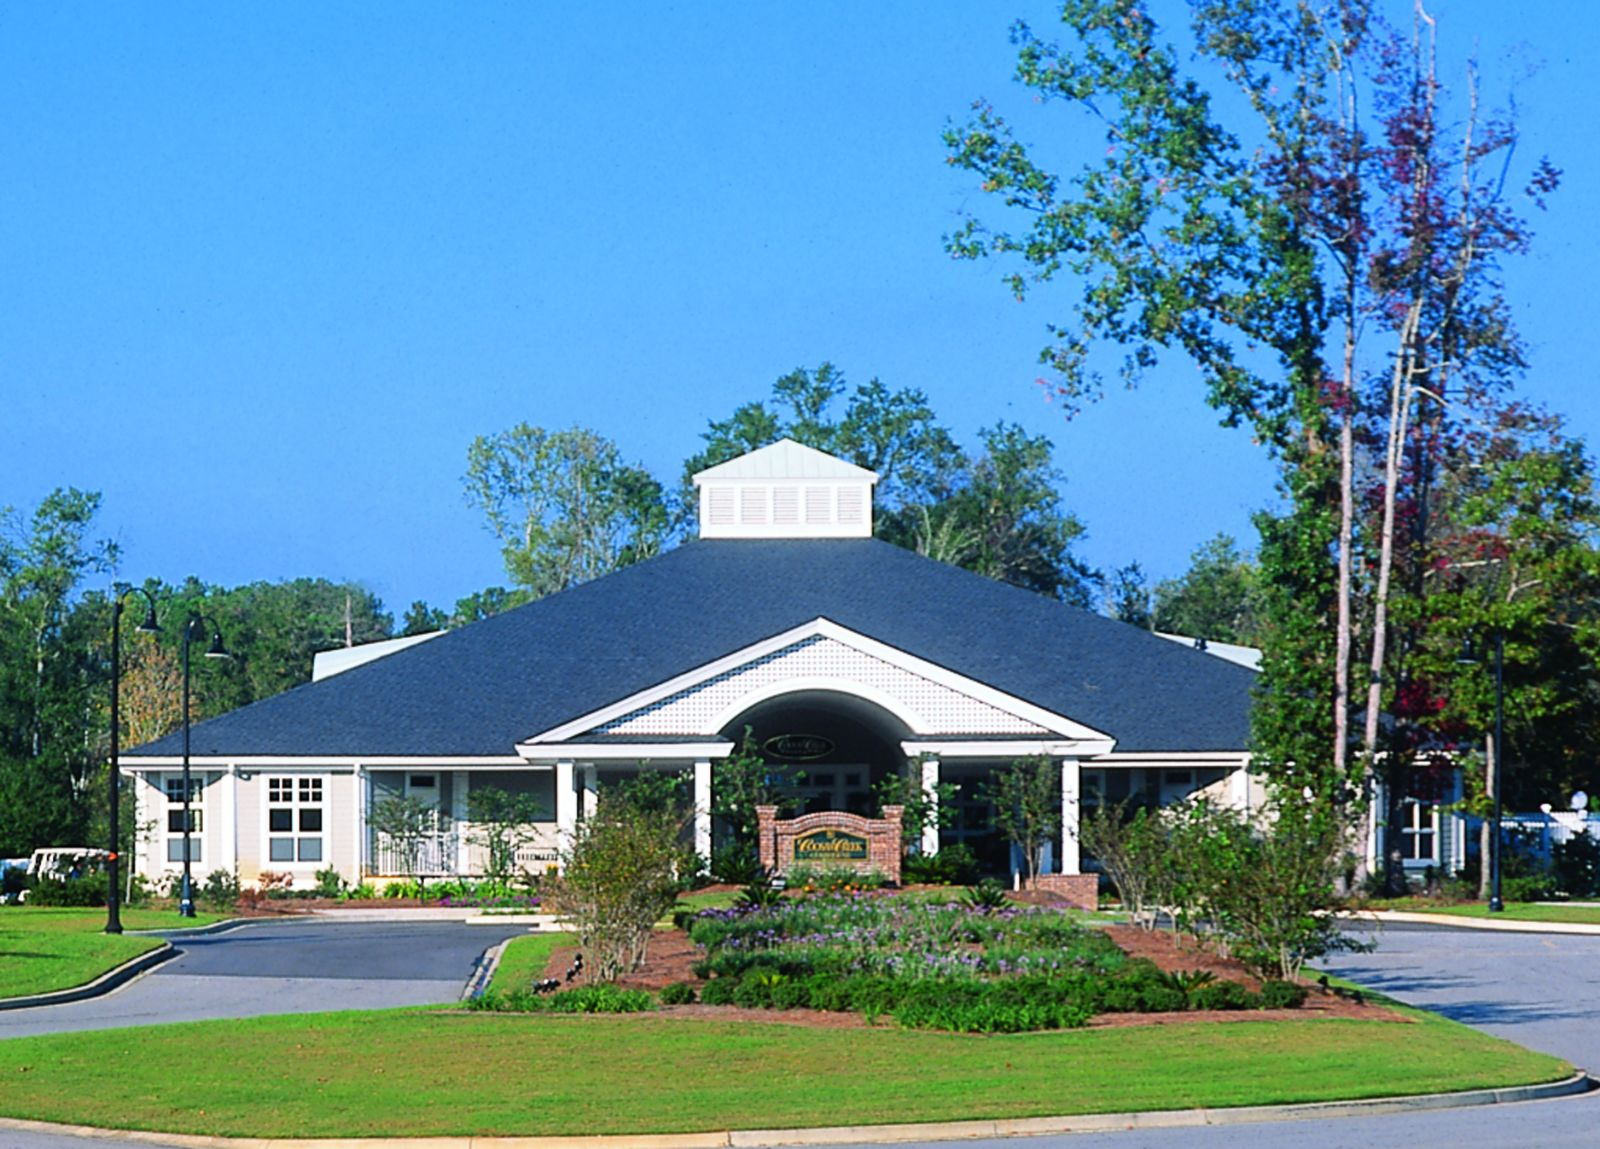 The Coosaw Creek Country Club clubhouse